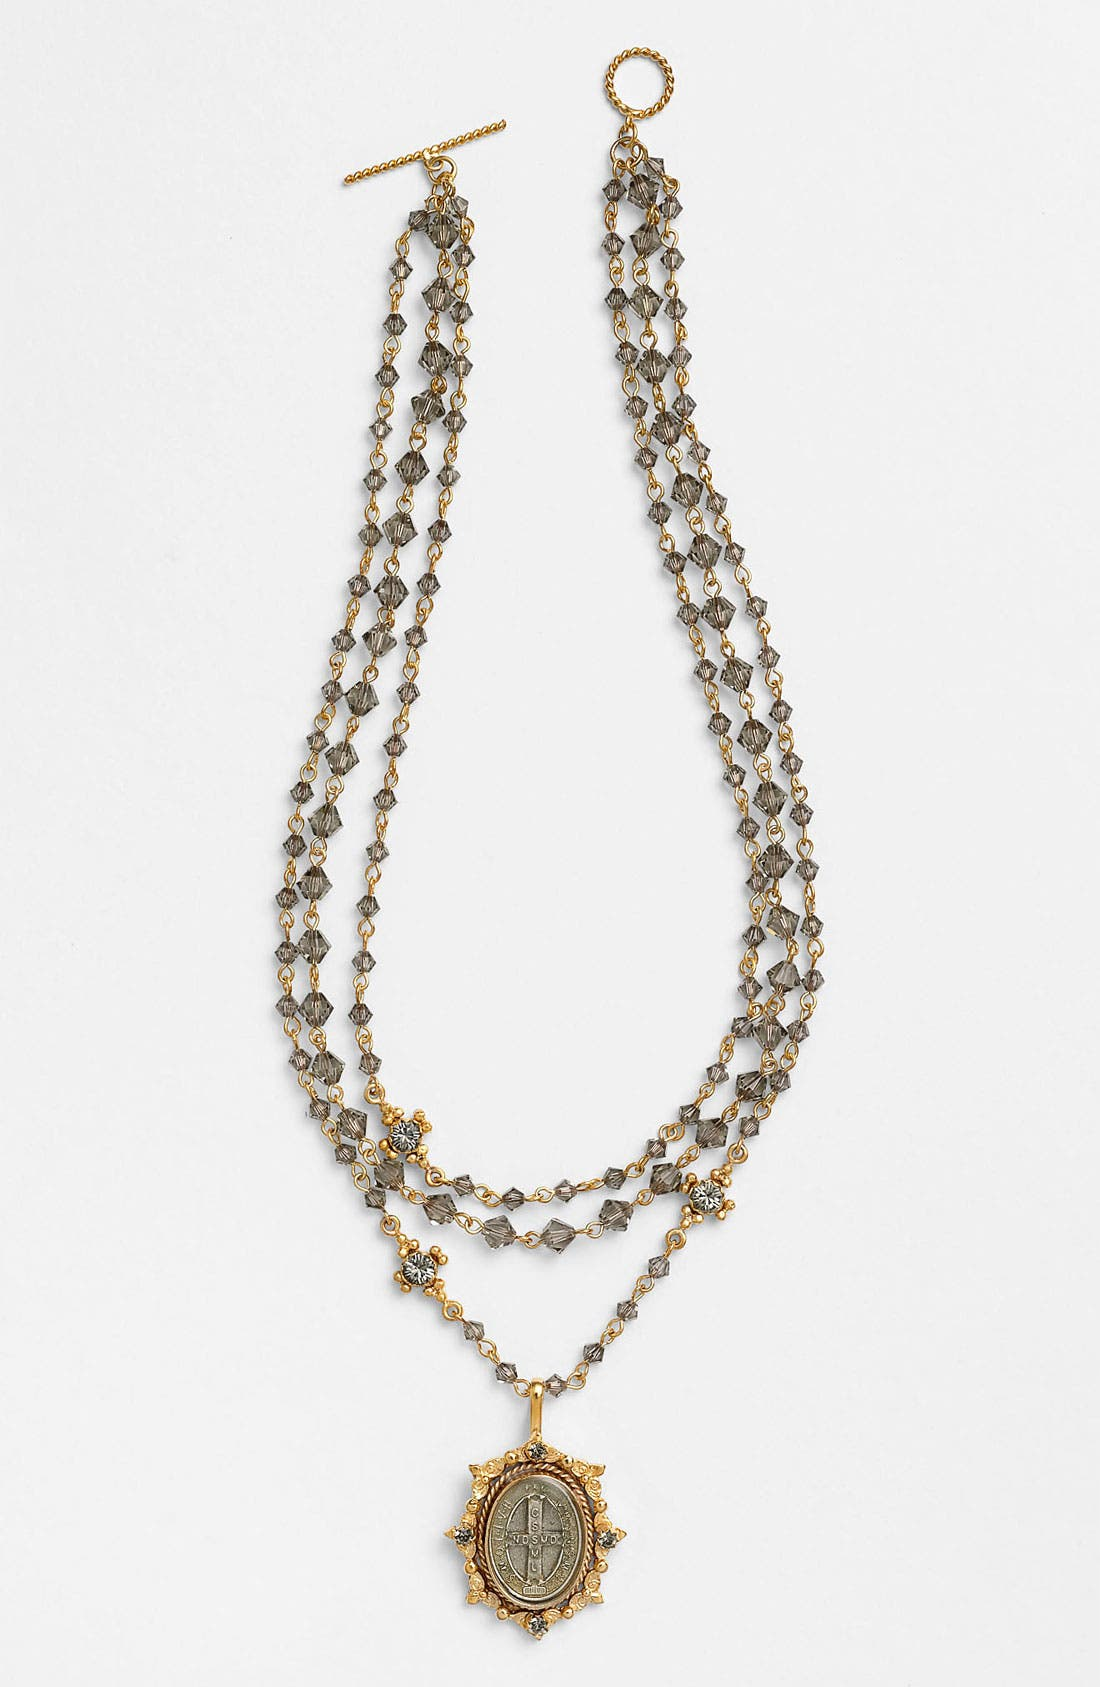 Main Image - Virgins Saints & Angels 'Classic Magdalena' Necklace (Nordstrom Exclusive)